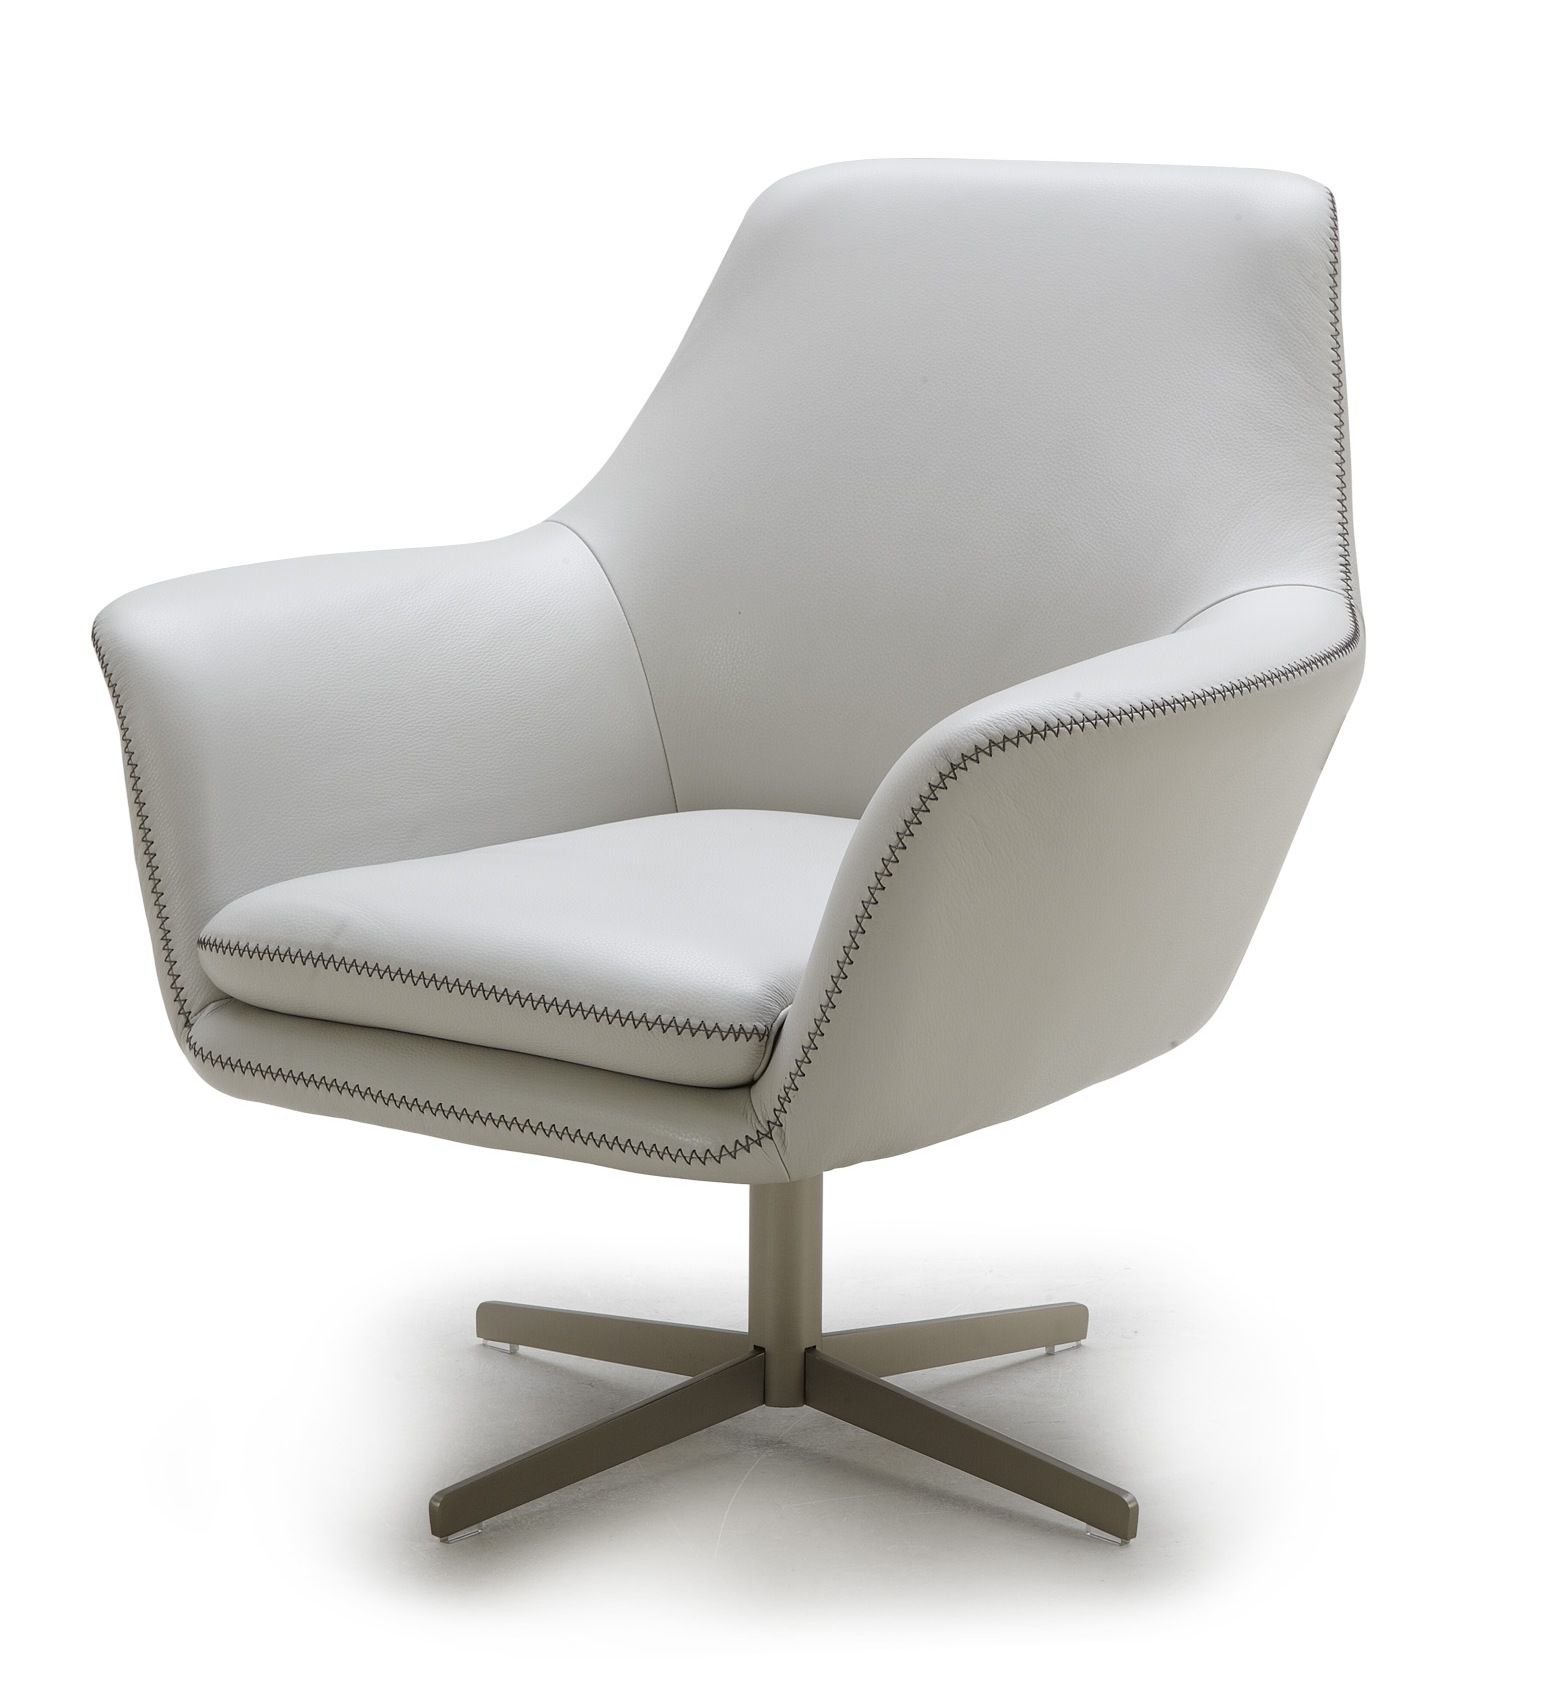 zara swivel chair covers wholesale leather lounge has an attractive modern design that adapts to any space